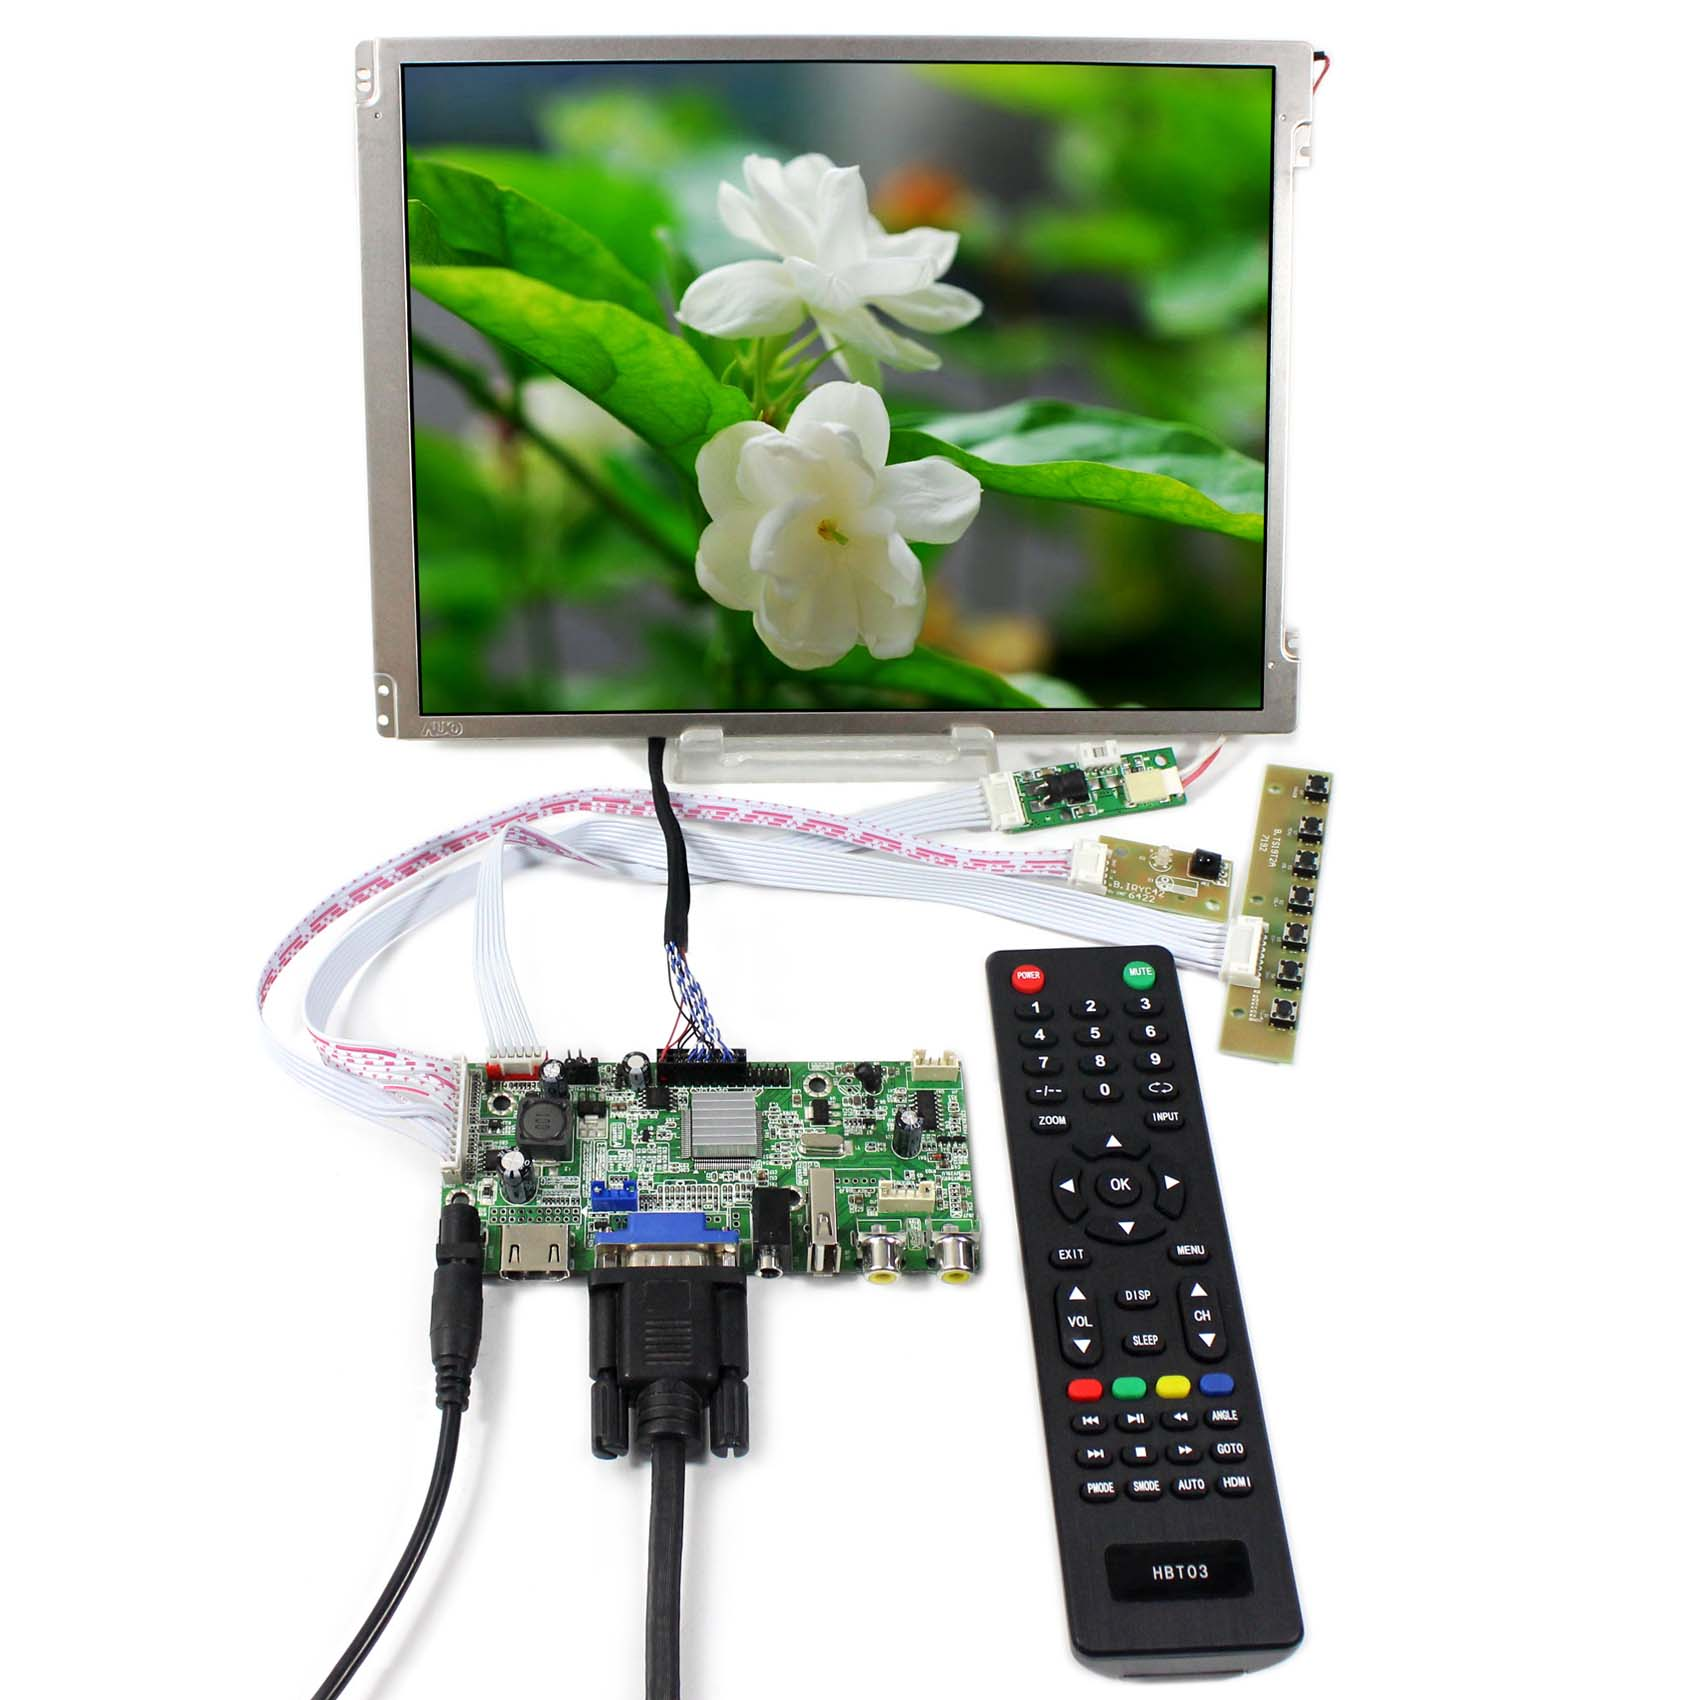 HDMI+VGA+AV+USB LCD Controller Board With 10.4inch 800x600 LED Backlight Replace G104SN03